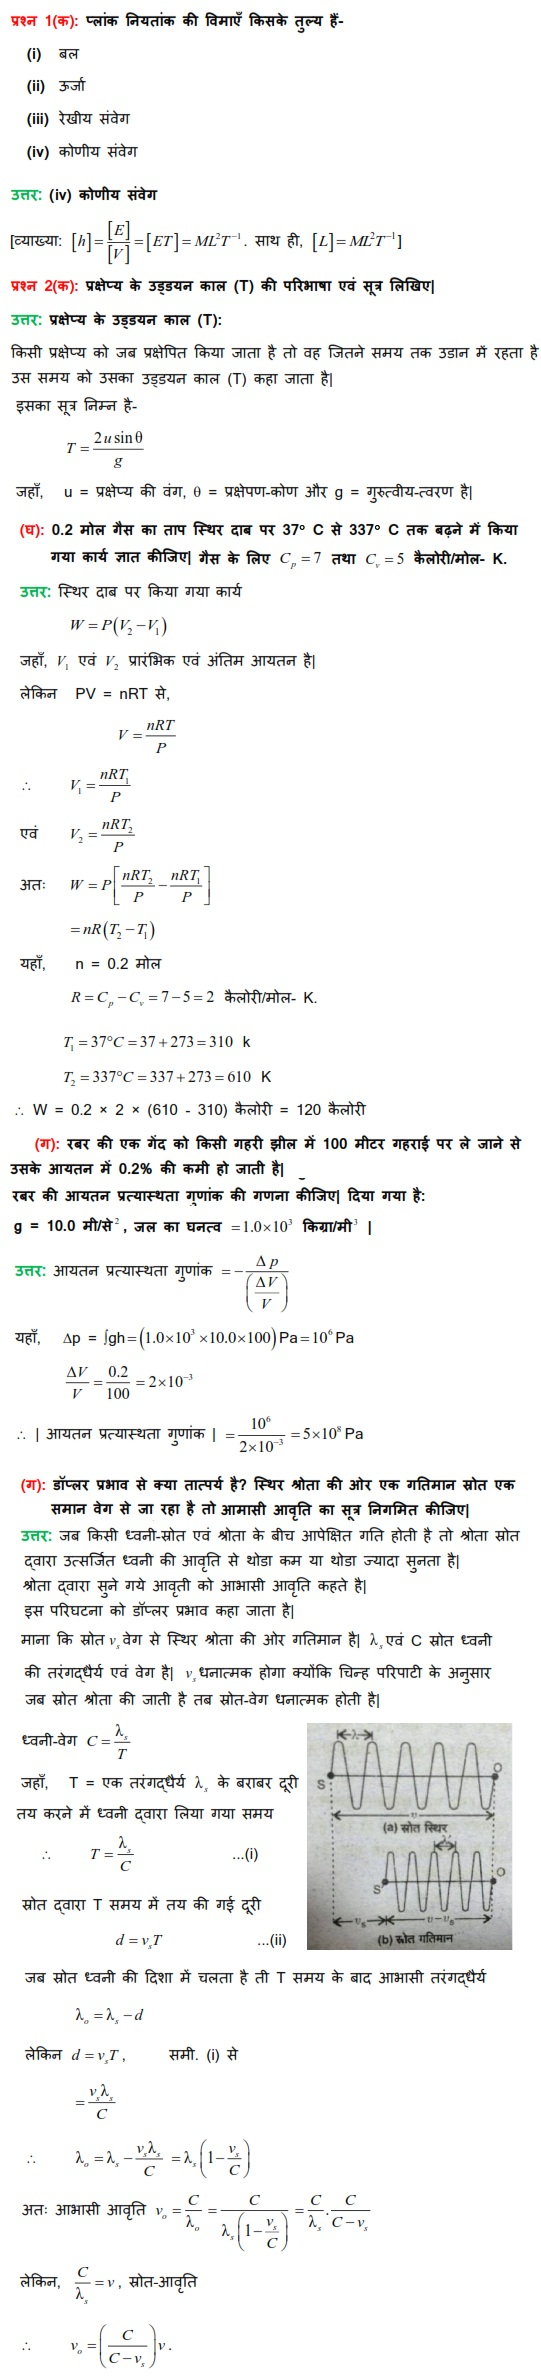 UP Board Class 12th Physics First Solved Question Paper Set